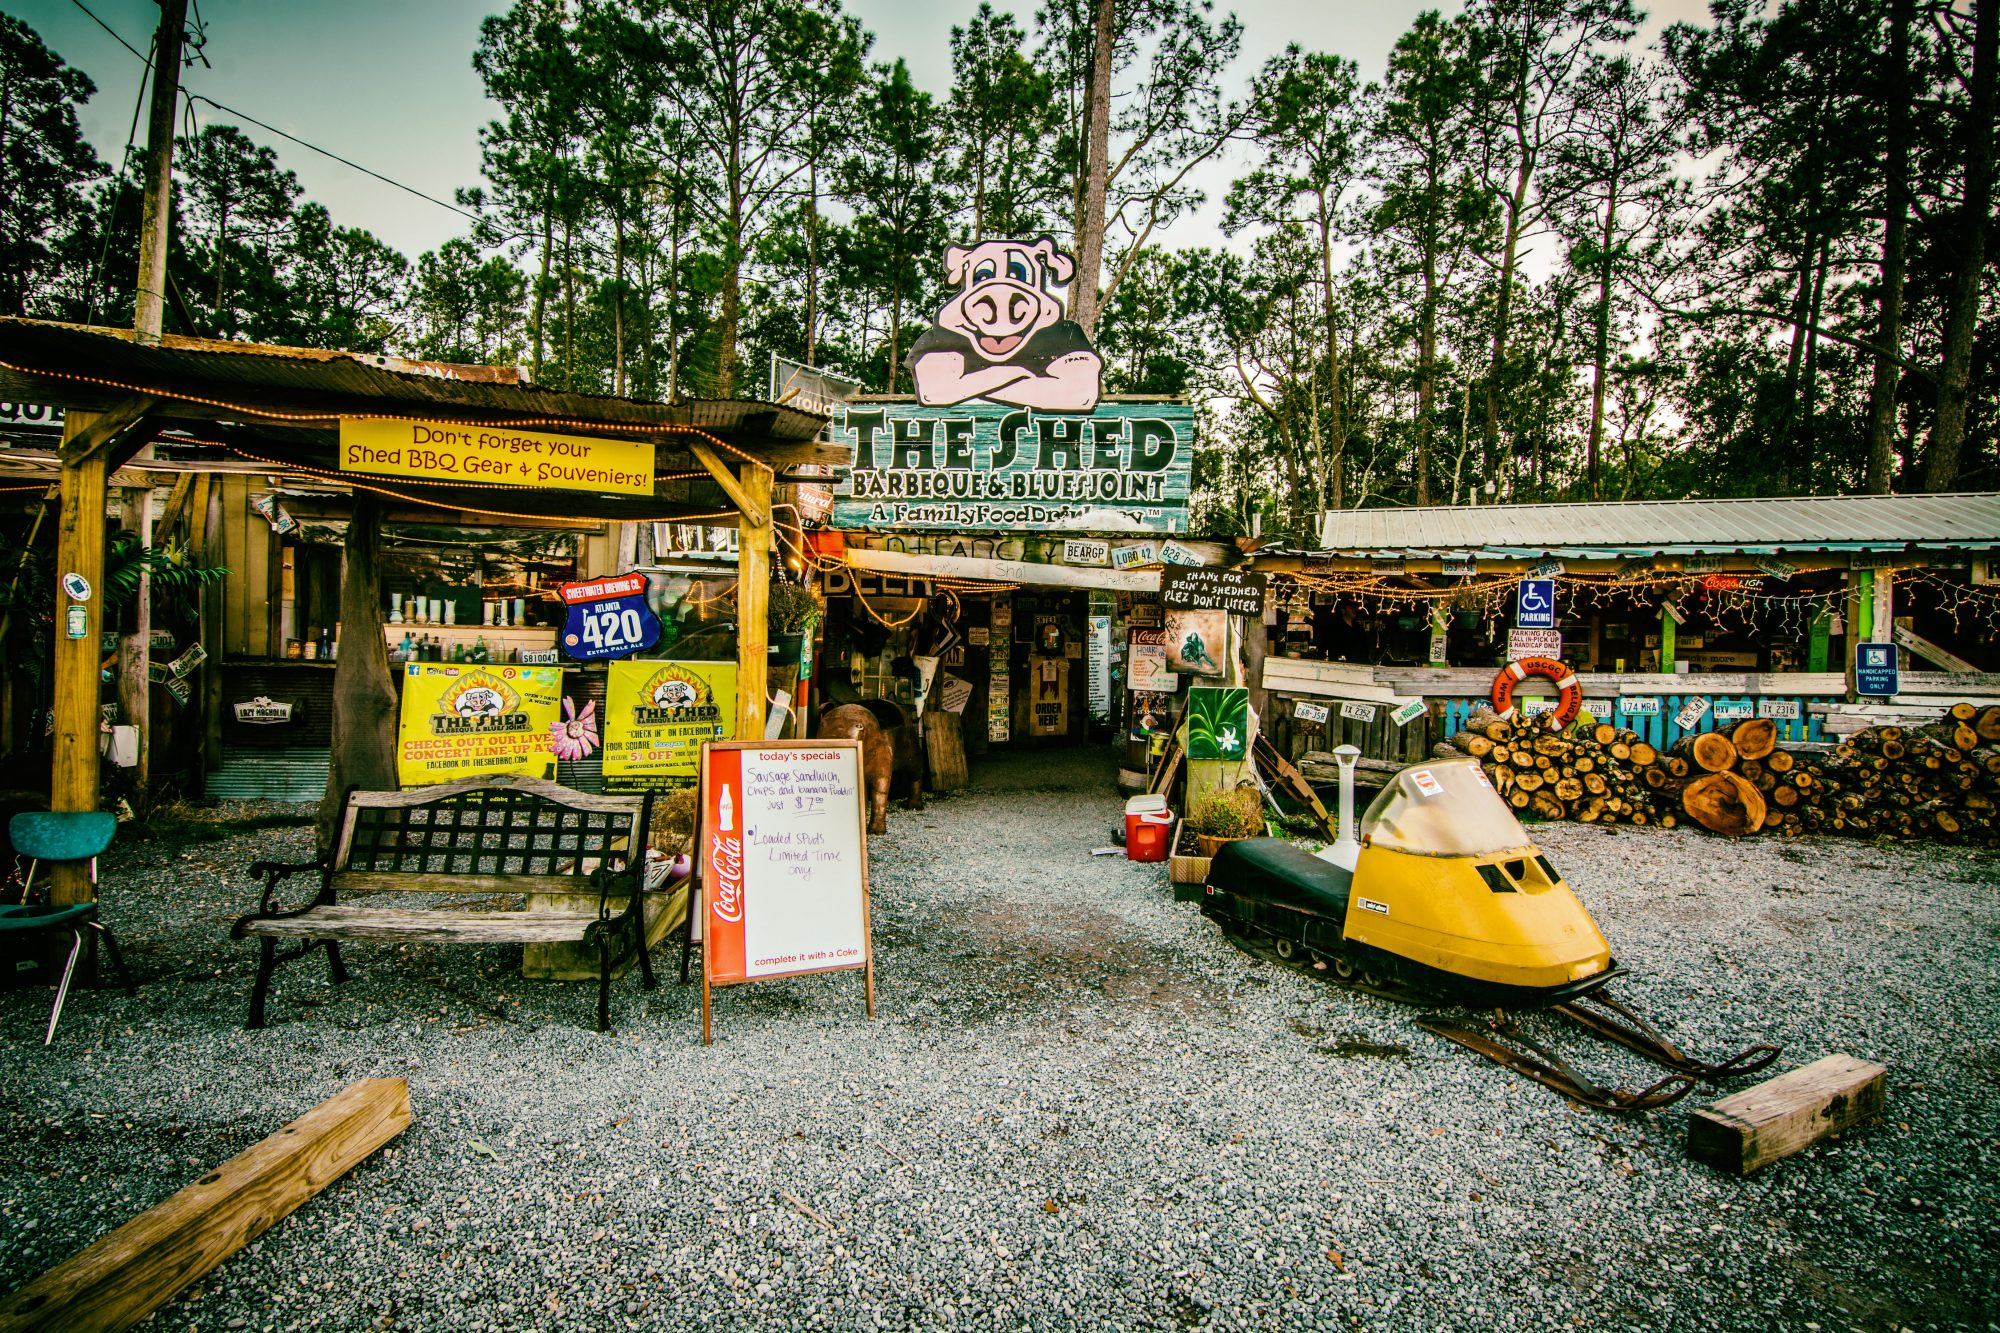 The Shed BBQ in Ocean Springs, Mississippi